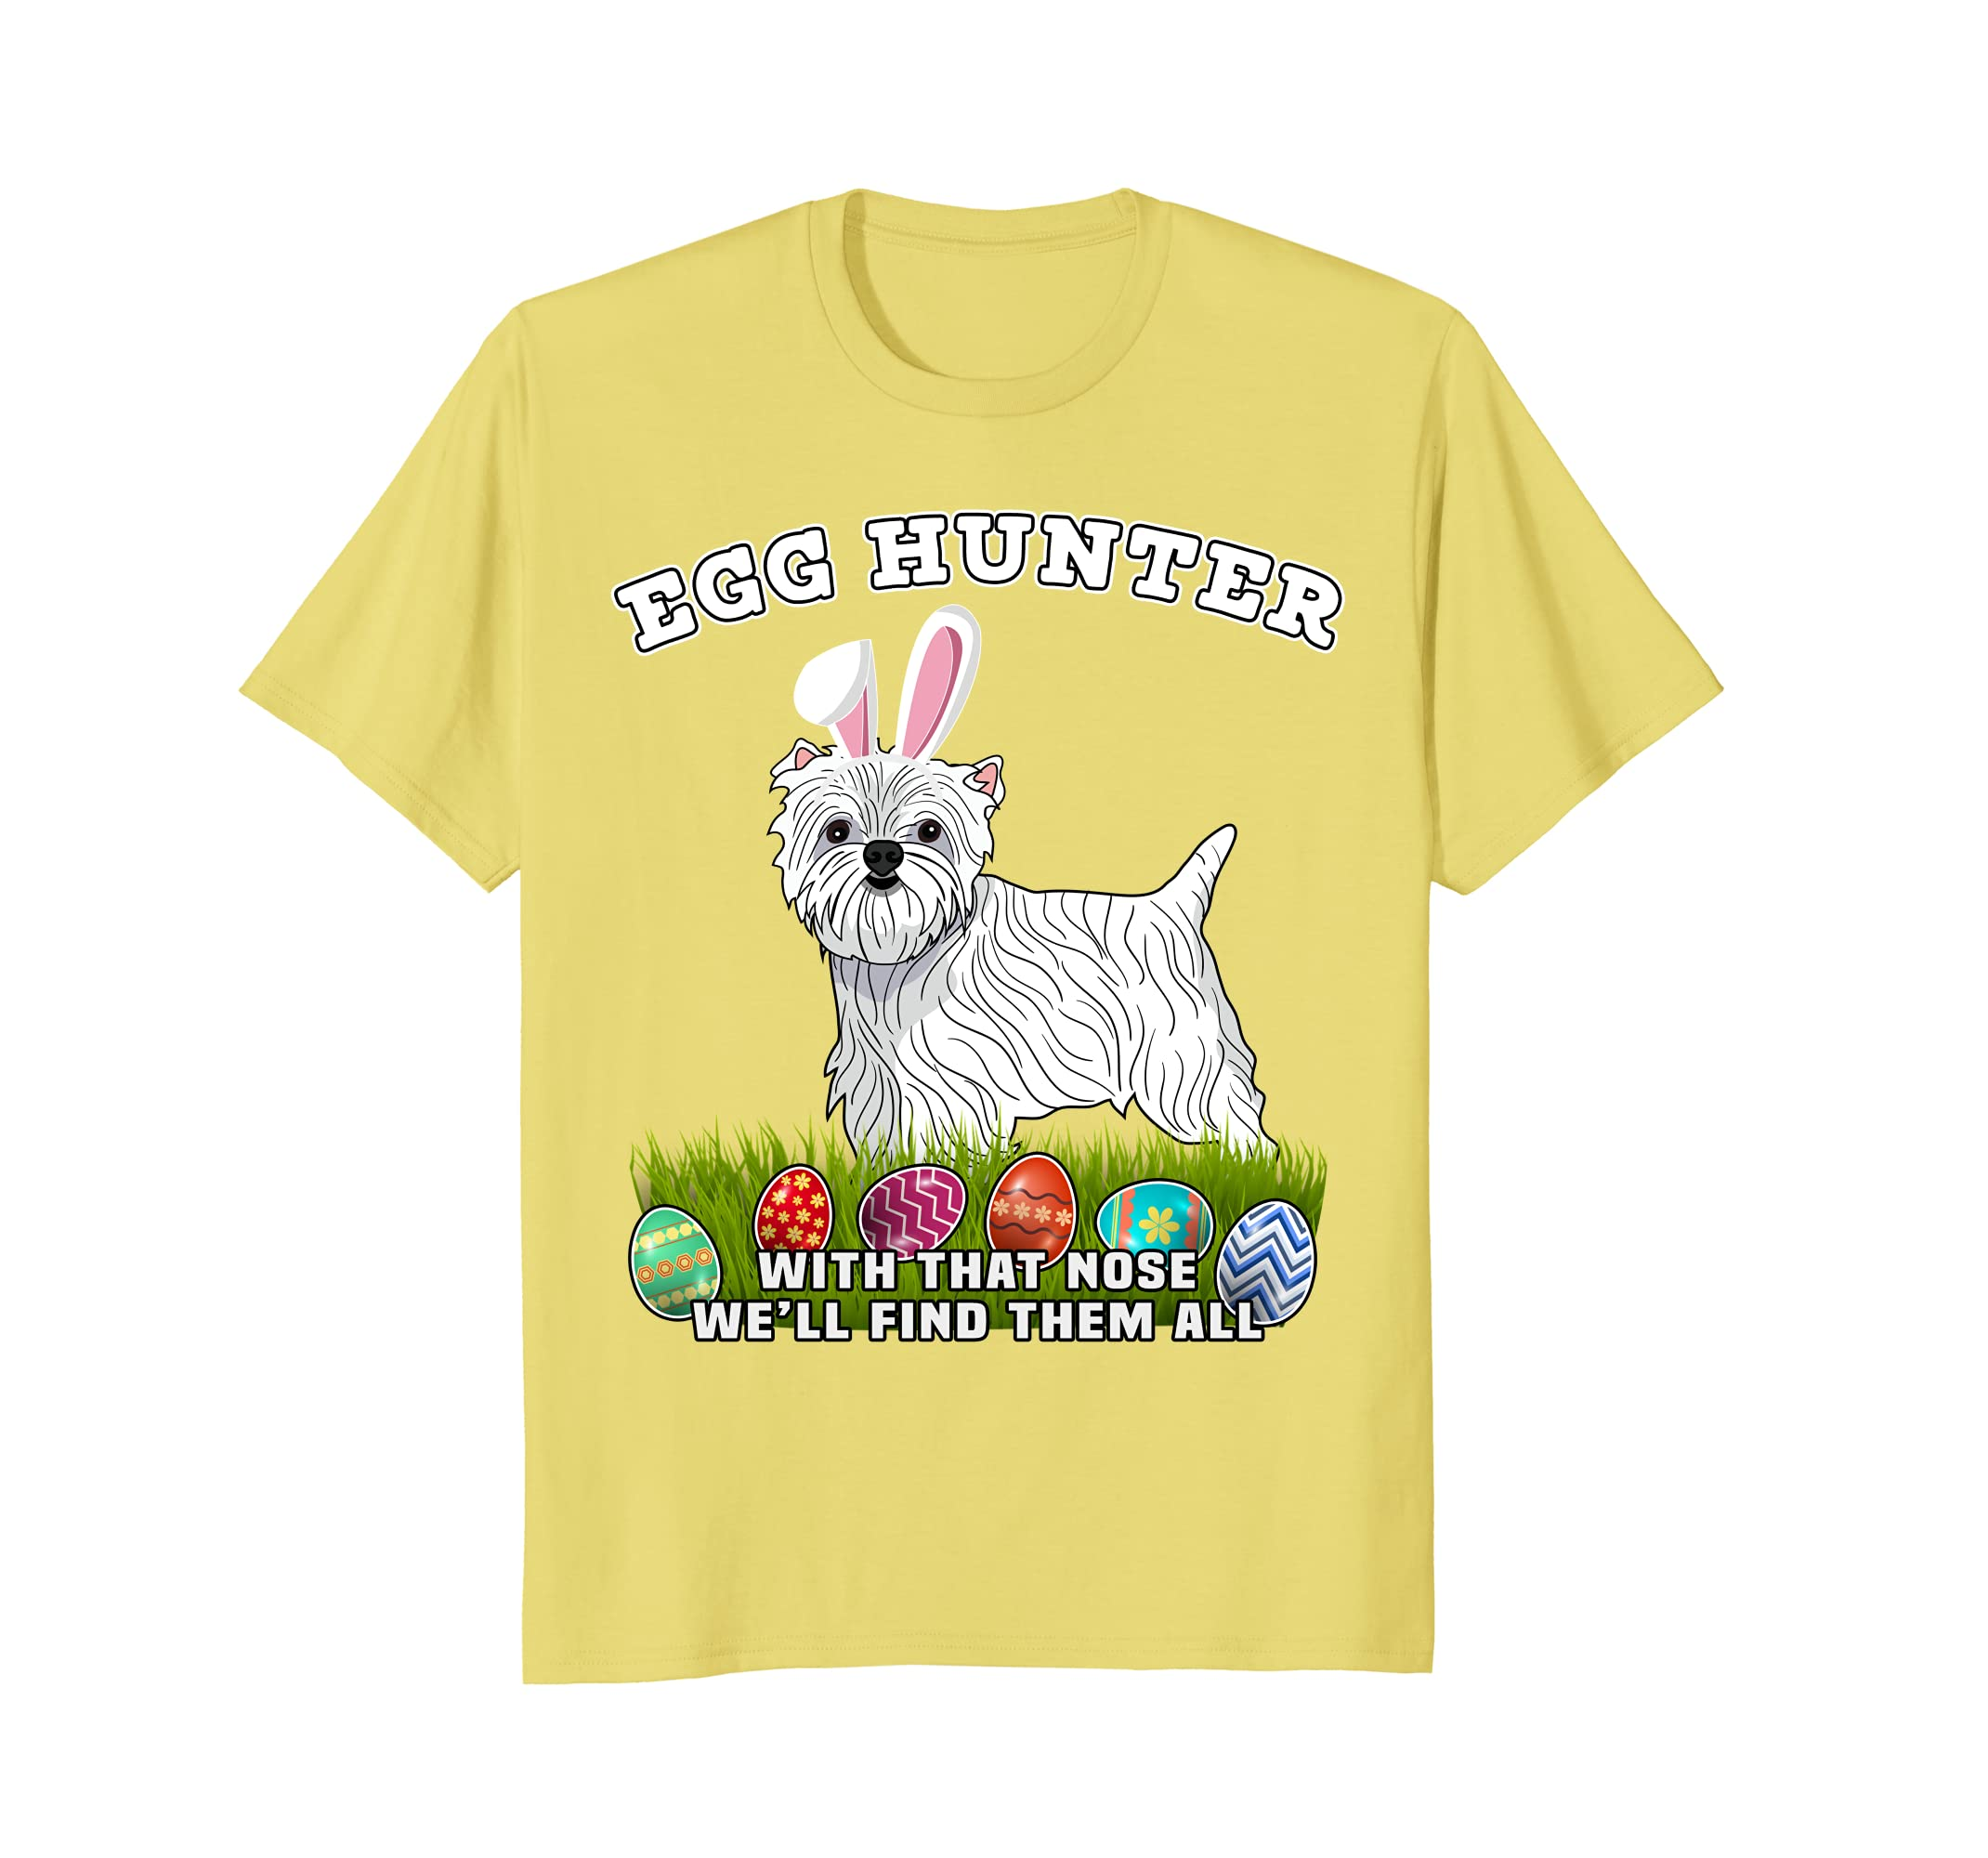 Easter Egg Hunting Dog West Highland White Terrier T Shirt-AZP